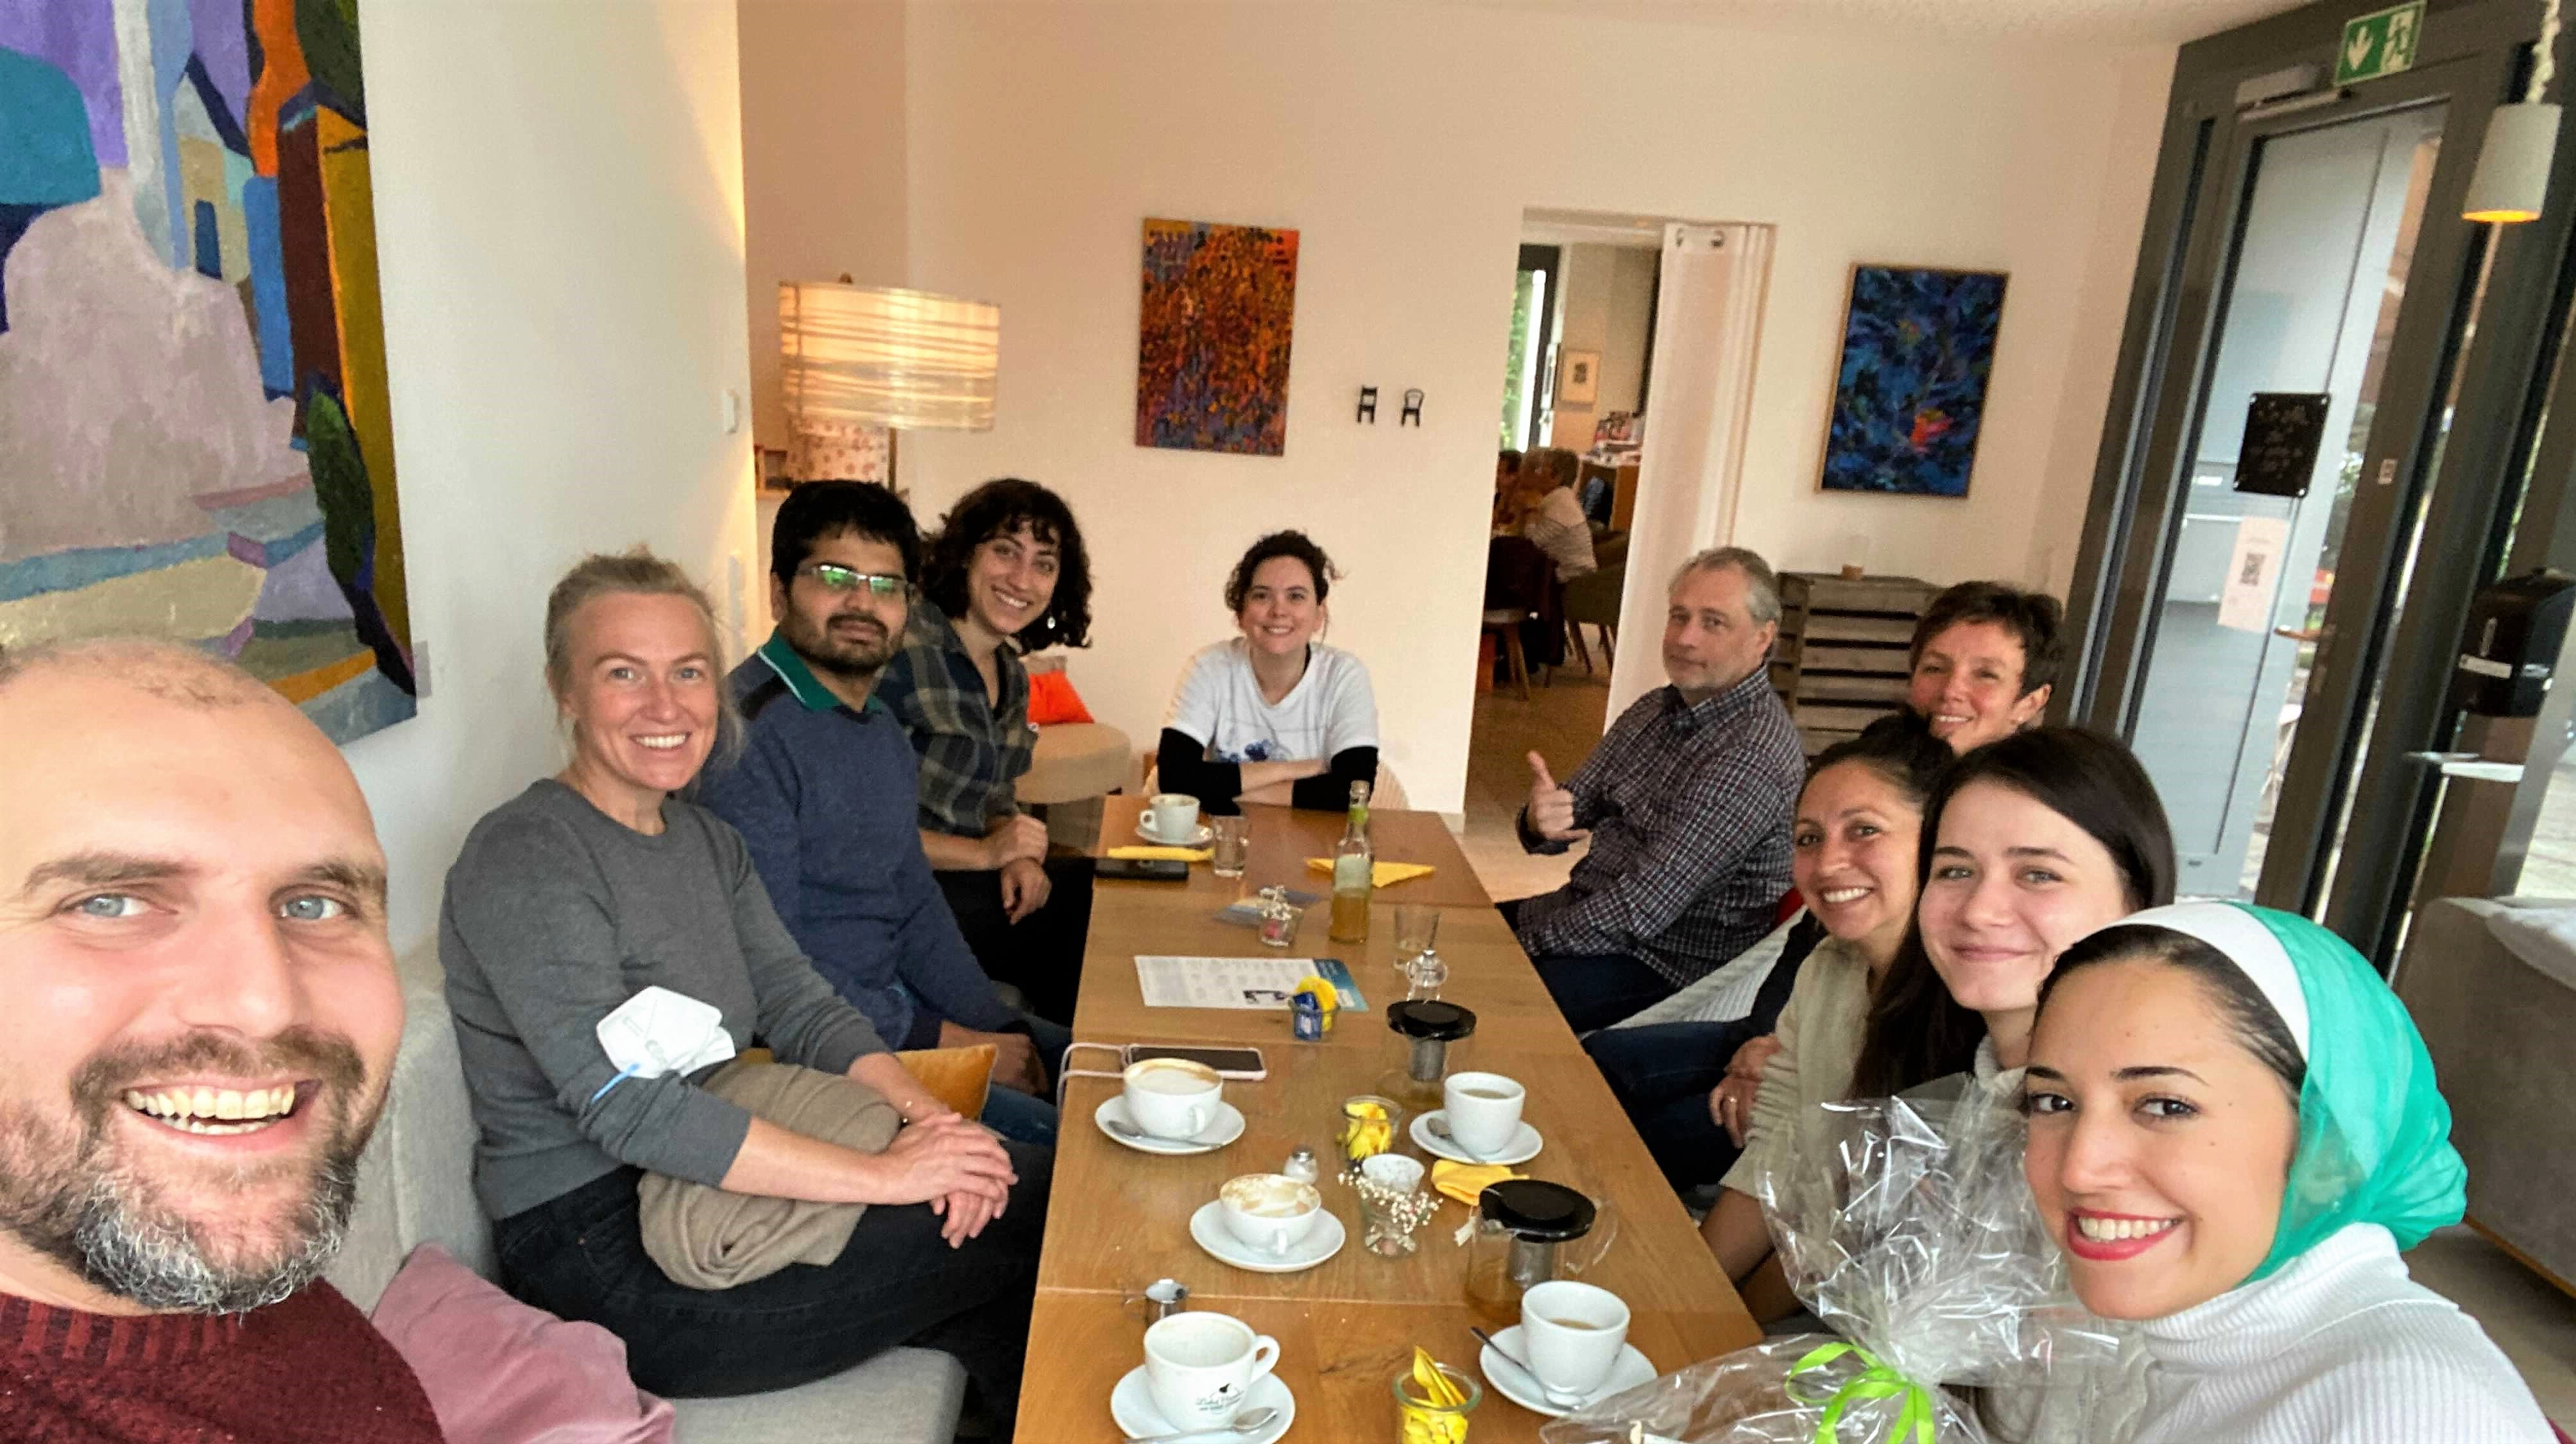 SEE Team Met for a Breakfast and Discussing Exciting Plans